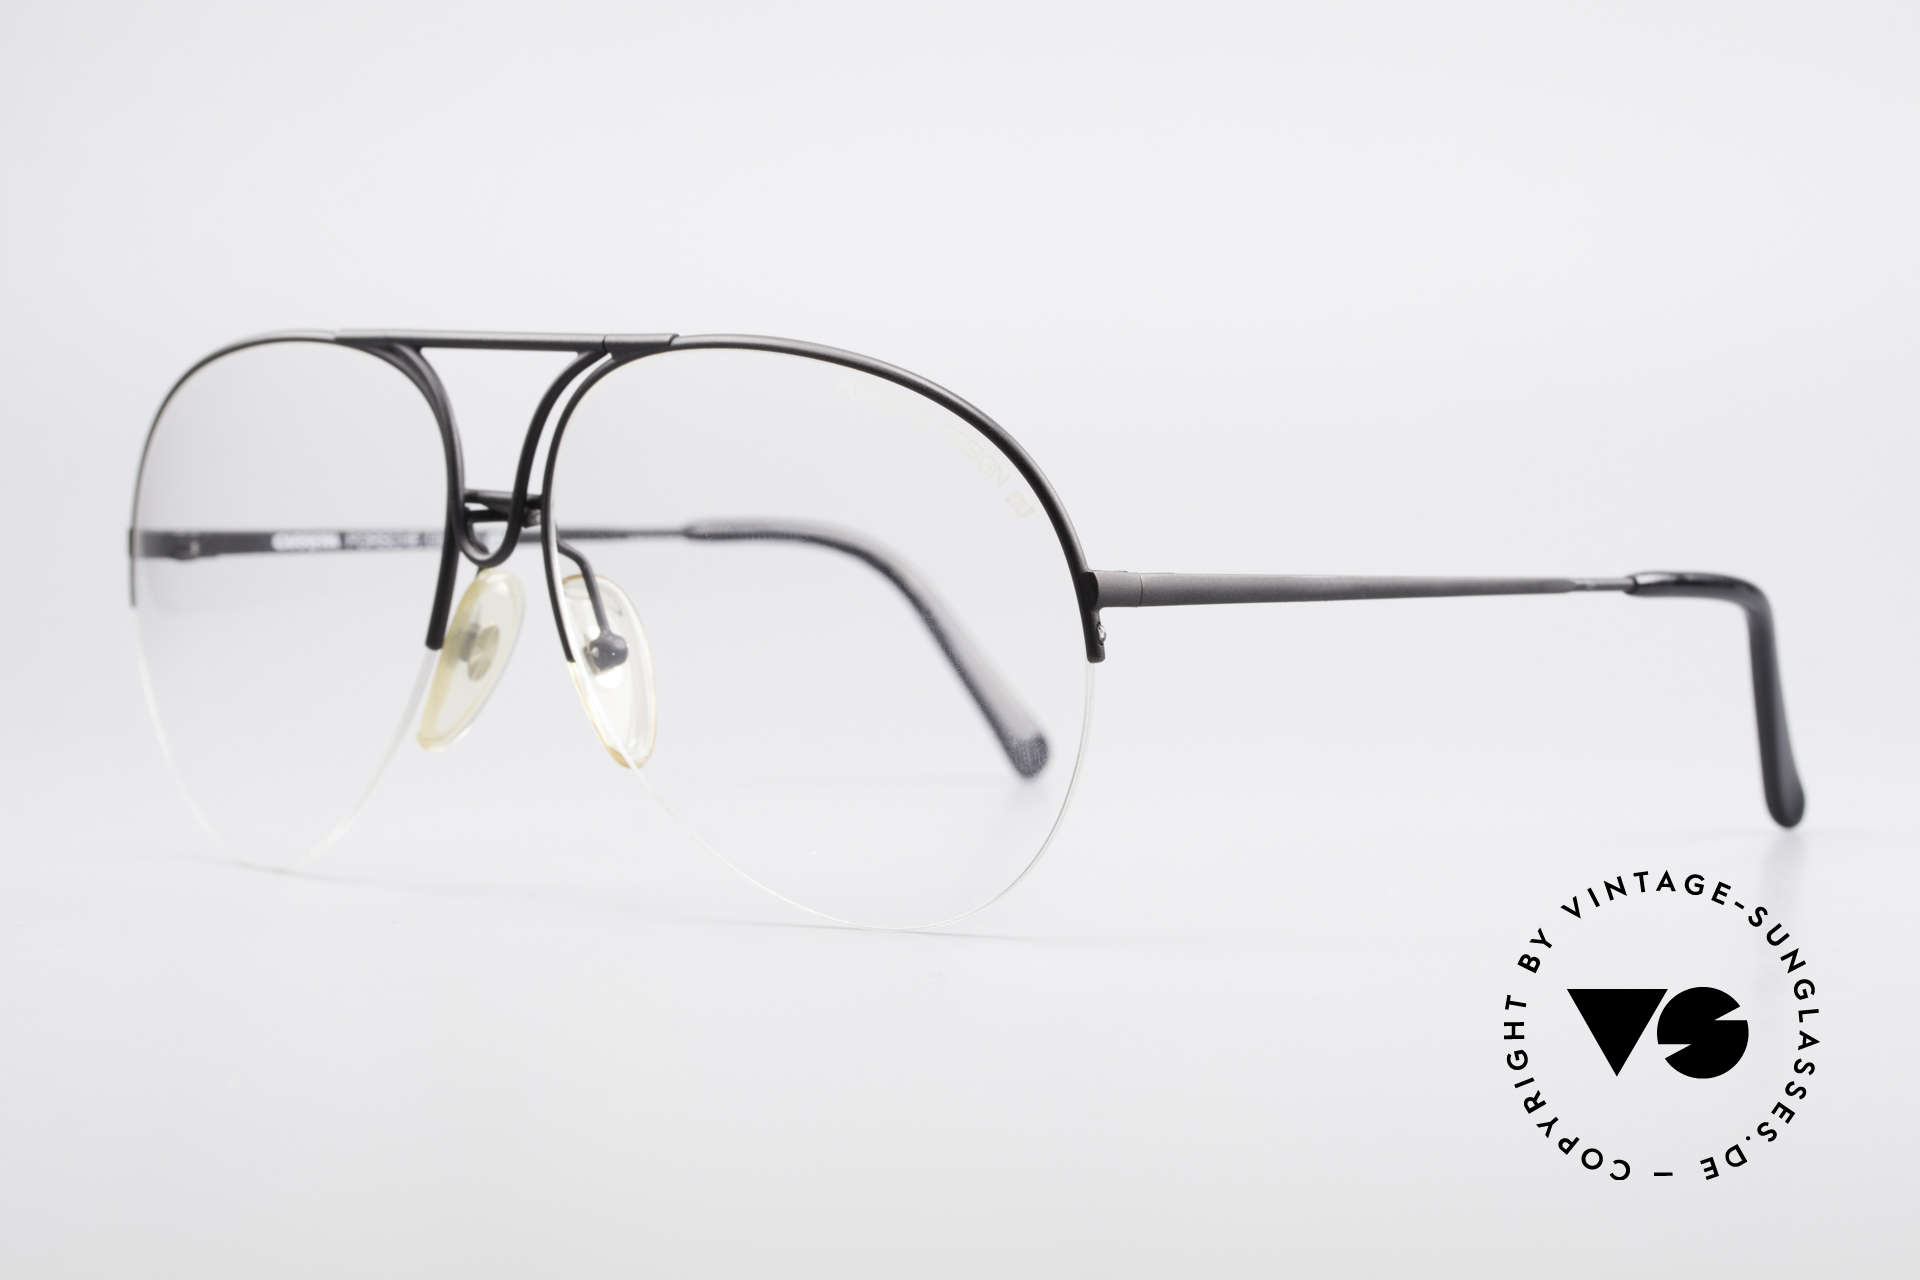 Porsche 5627 Semi Rimless 90's Frame Large, classic aviator design - in LARGE size 63/15 mm, Made for Men